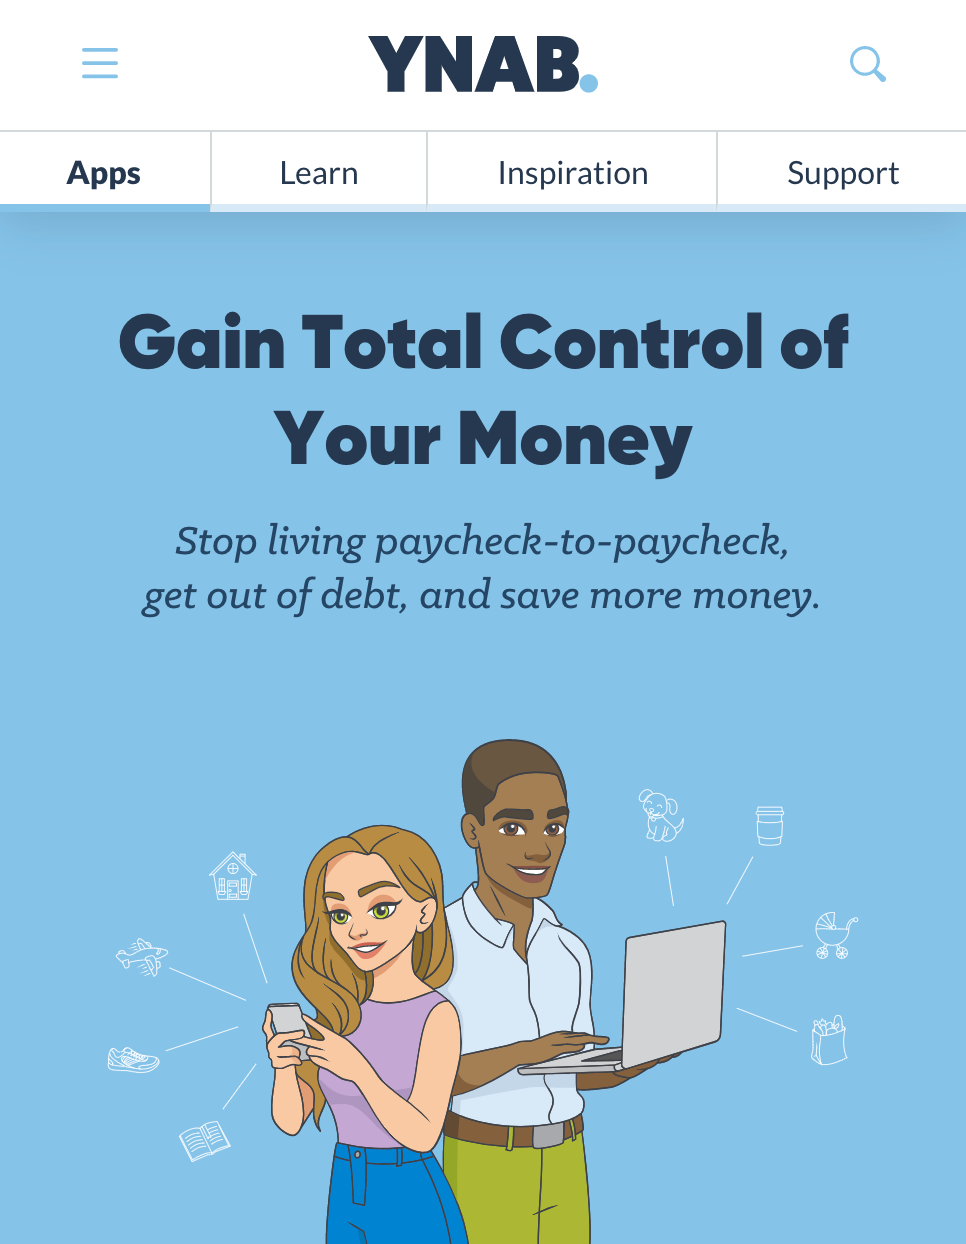 Personal Budgeting Tips: Use an App Like YNAB